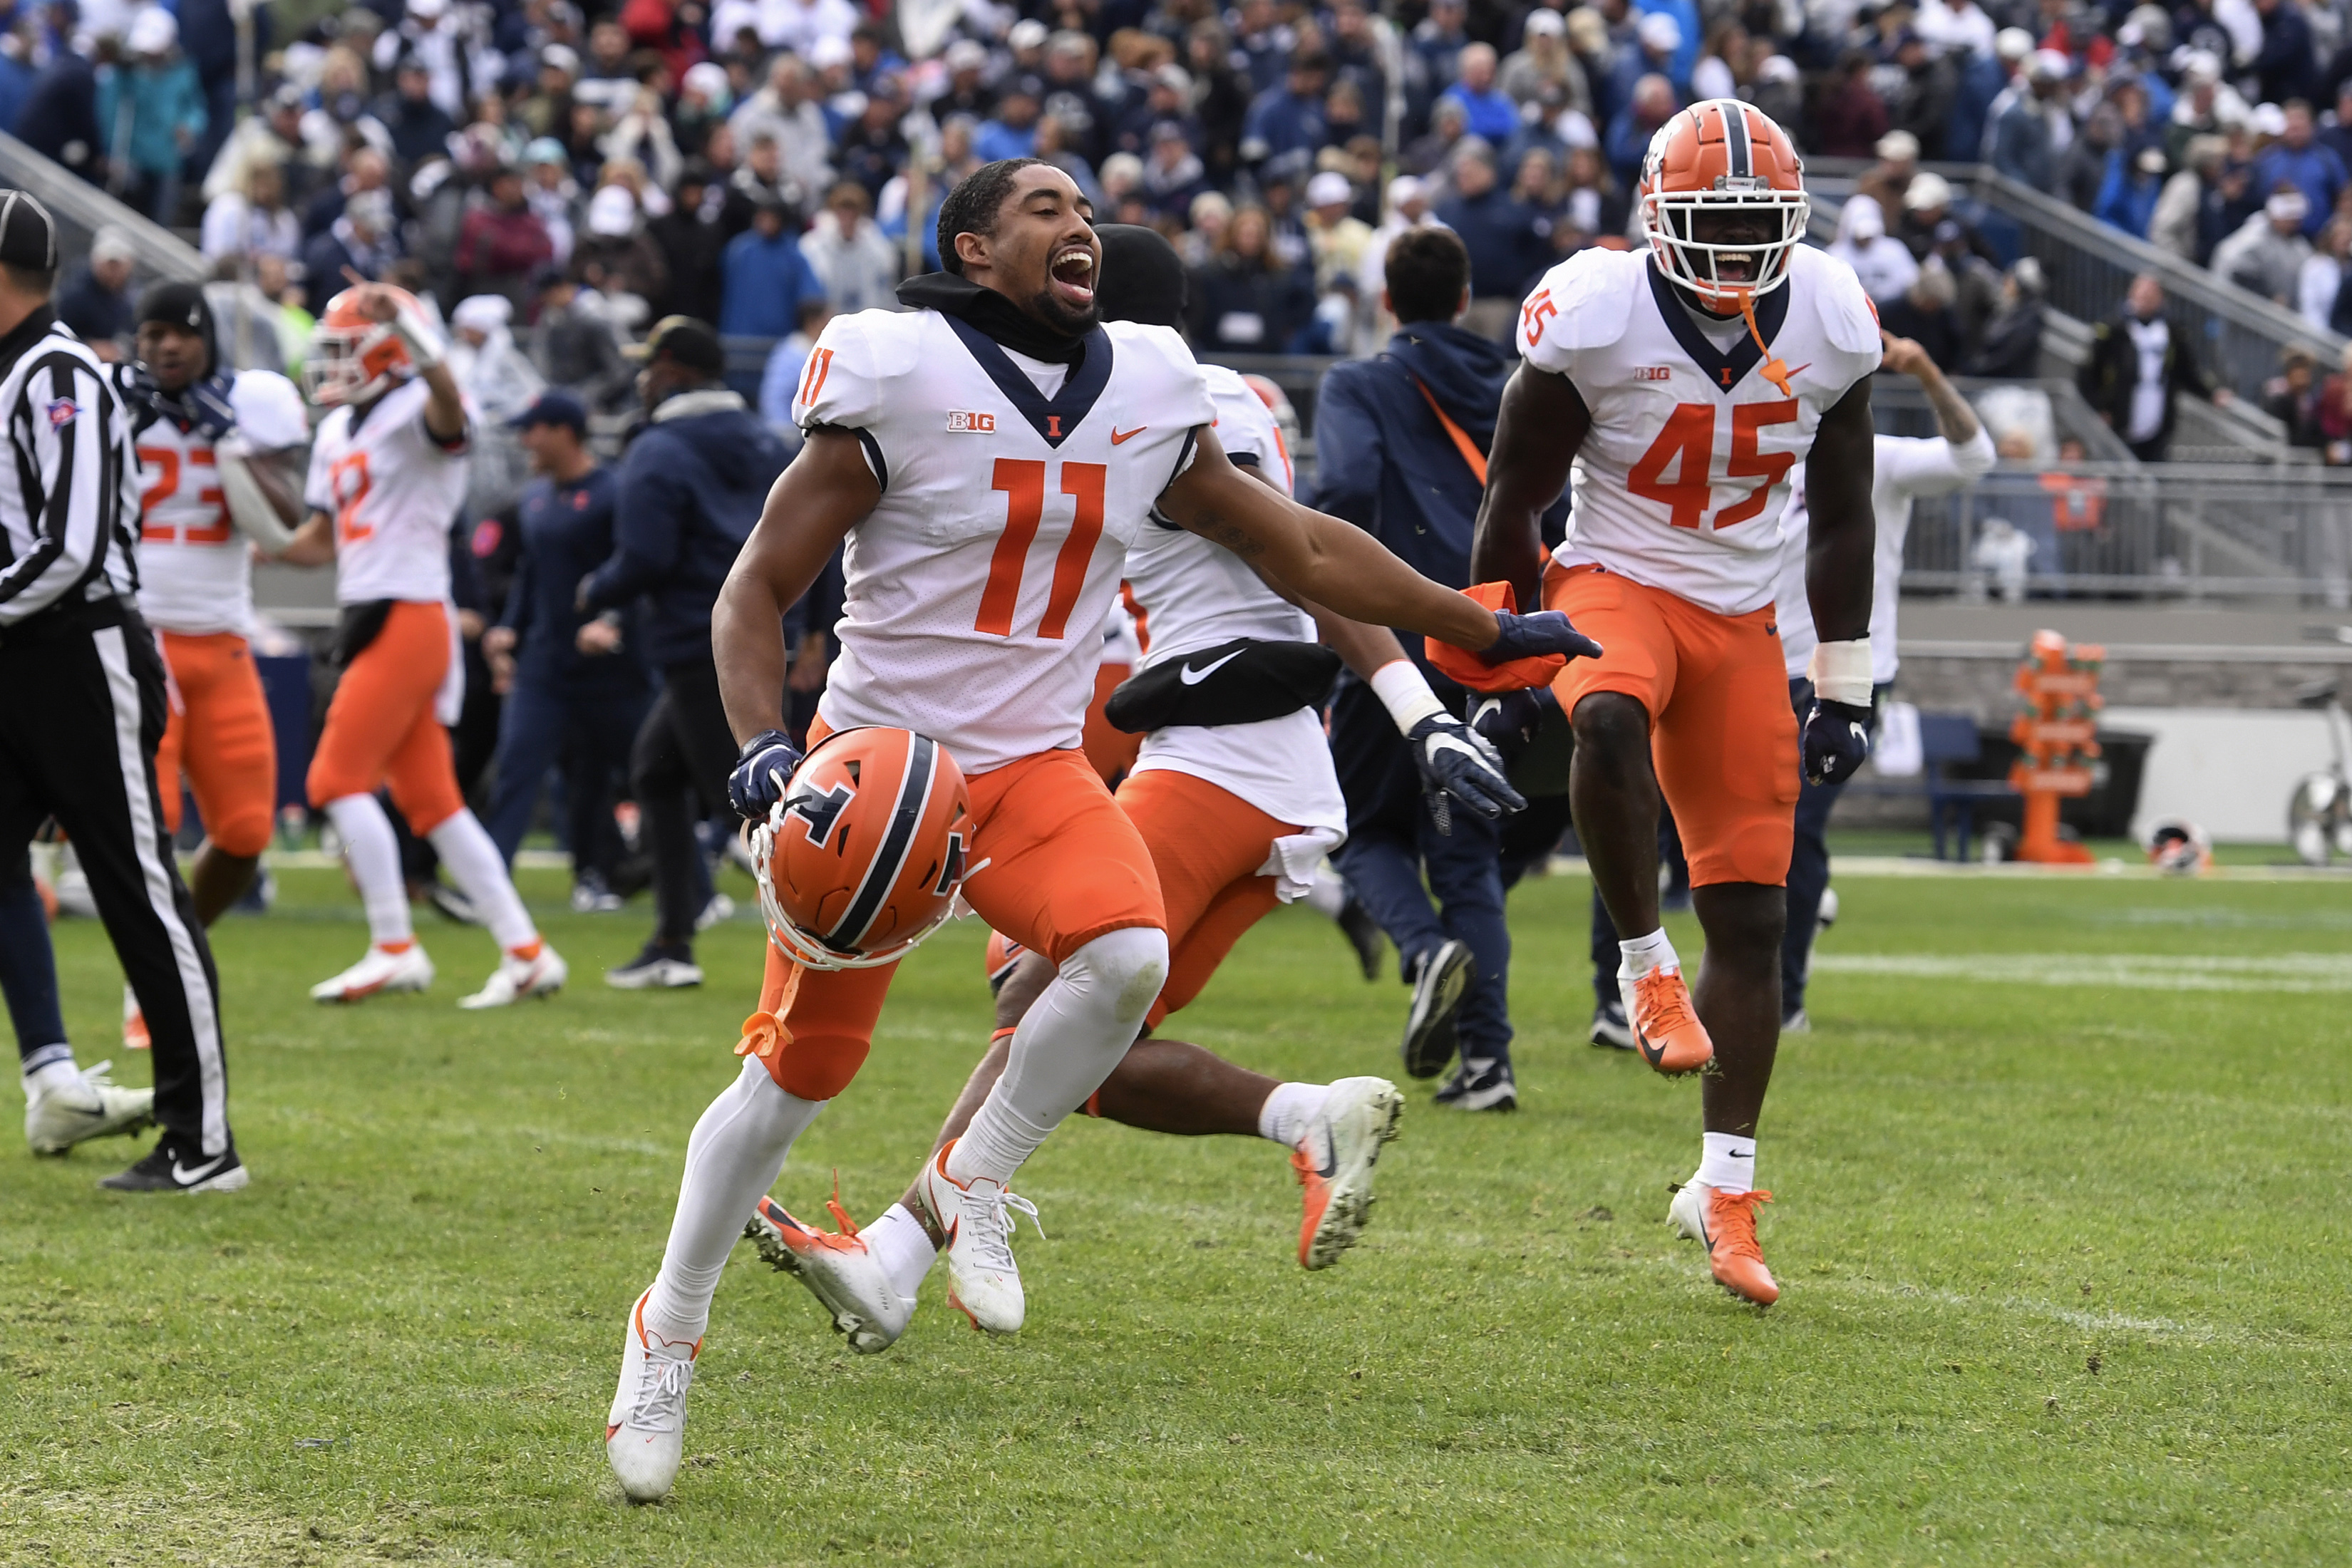 Illinois wide receiver Carlos Sandy (11) and linebacker Khalan Tolson (45) celebrate after last week's win over Penn State.